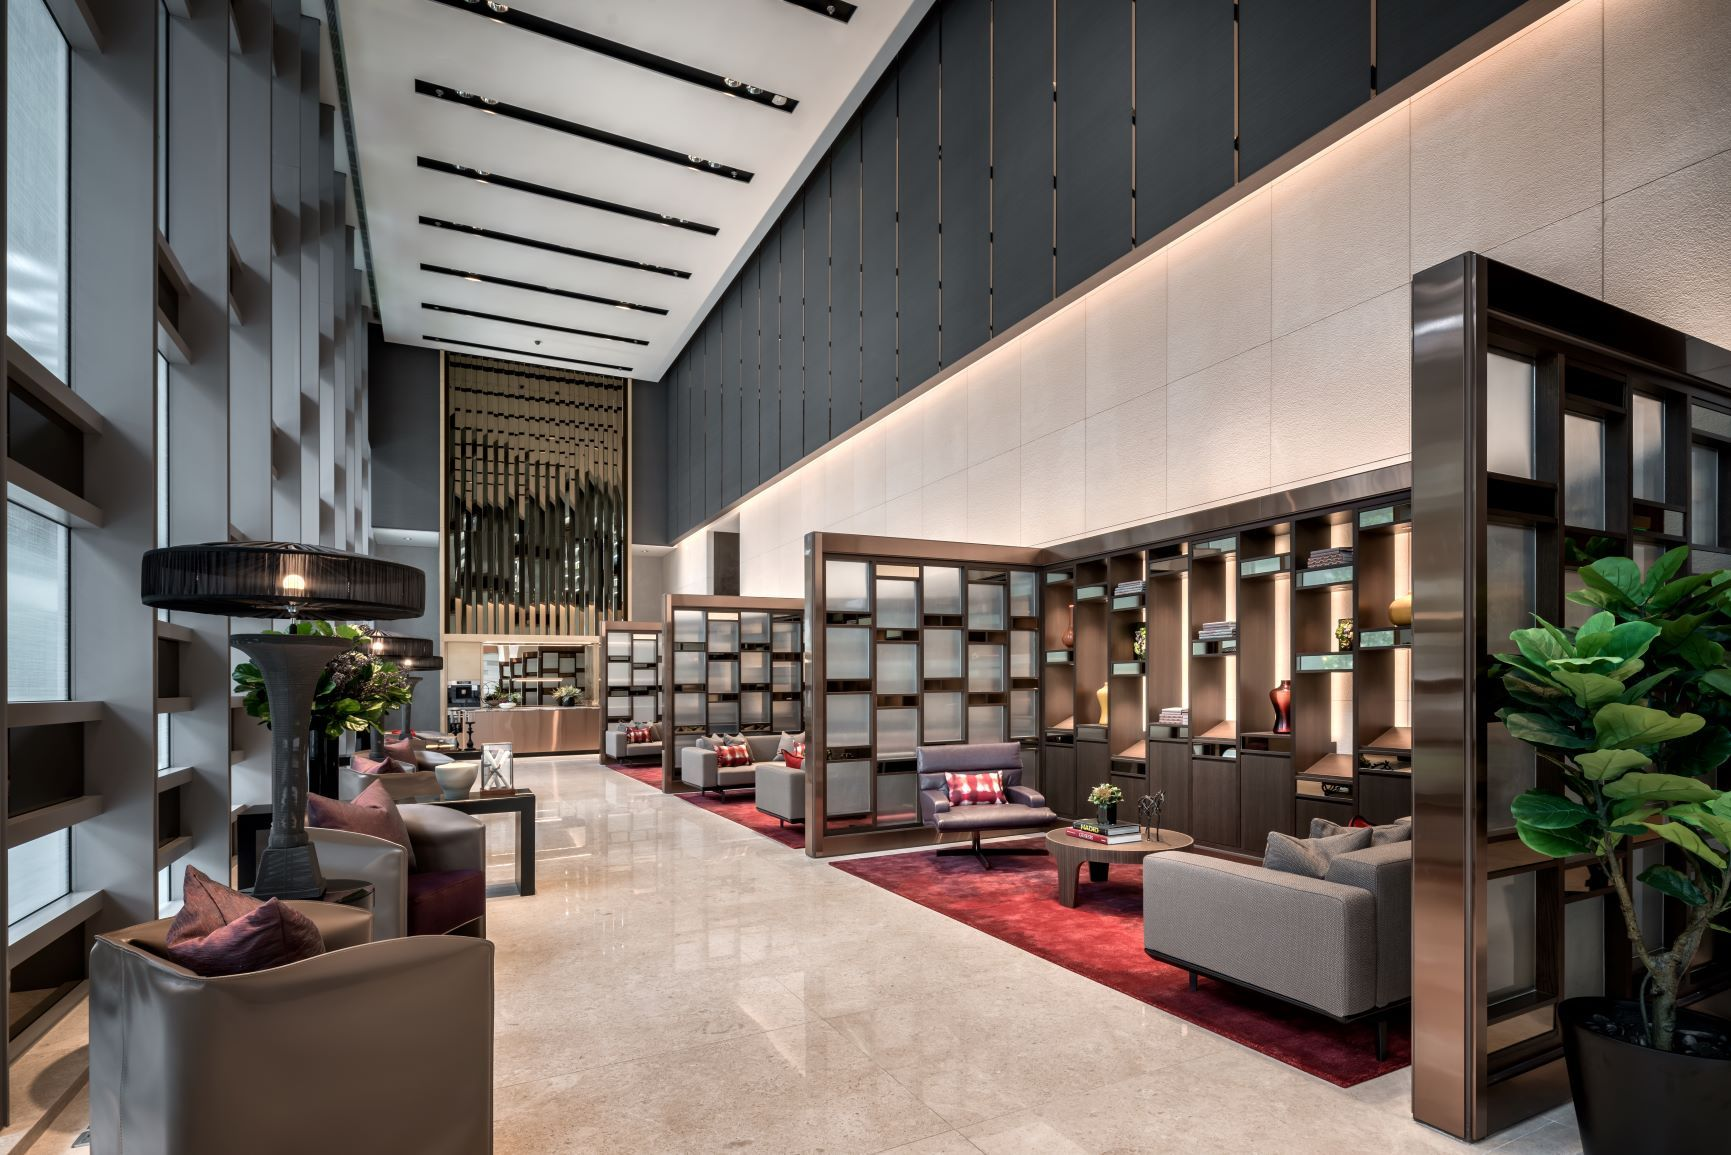 The arrival lobby of Wallich Residence, a luxury residential property in Tanjong Pagar by GuocoLand that's also housed in Singapore's tallest skyscraper